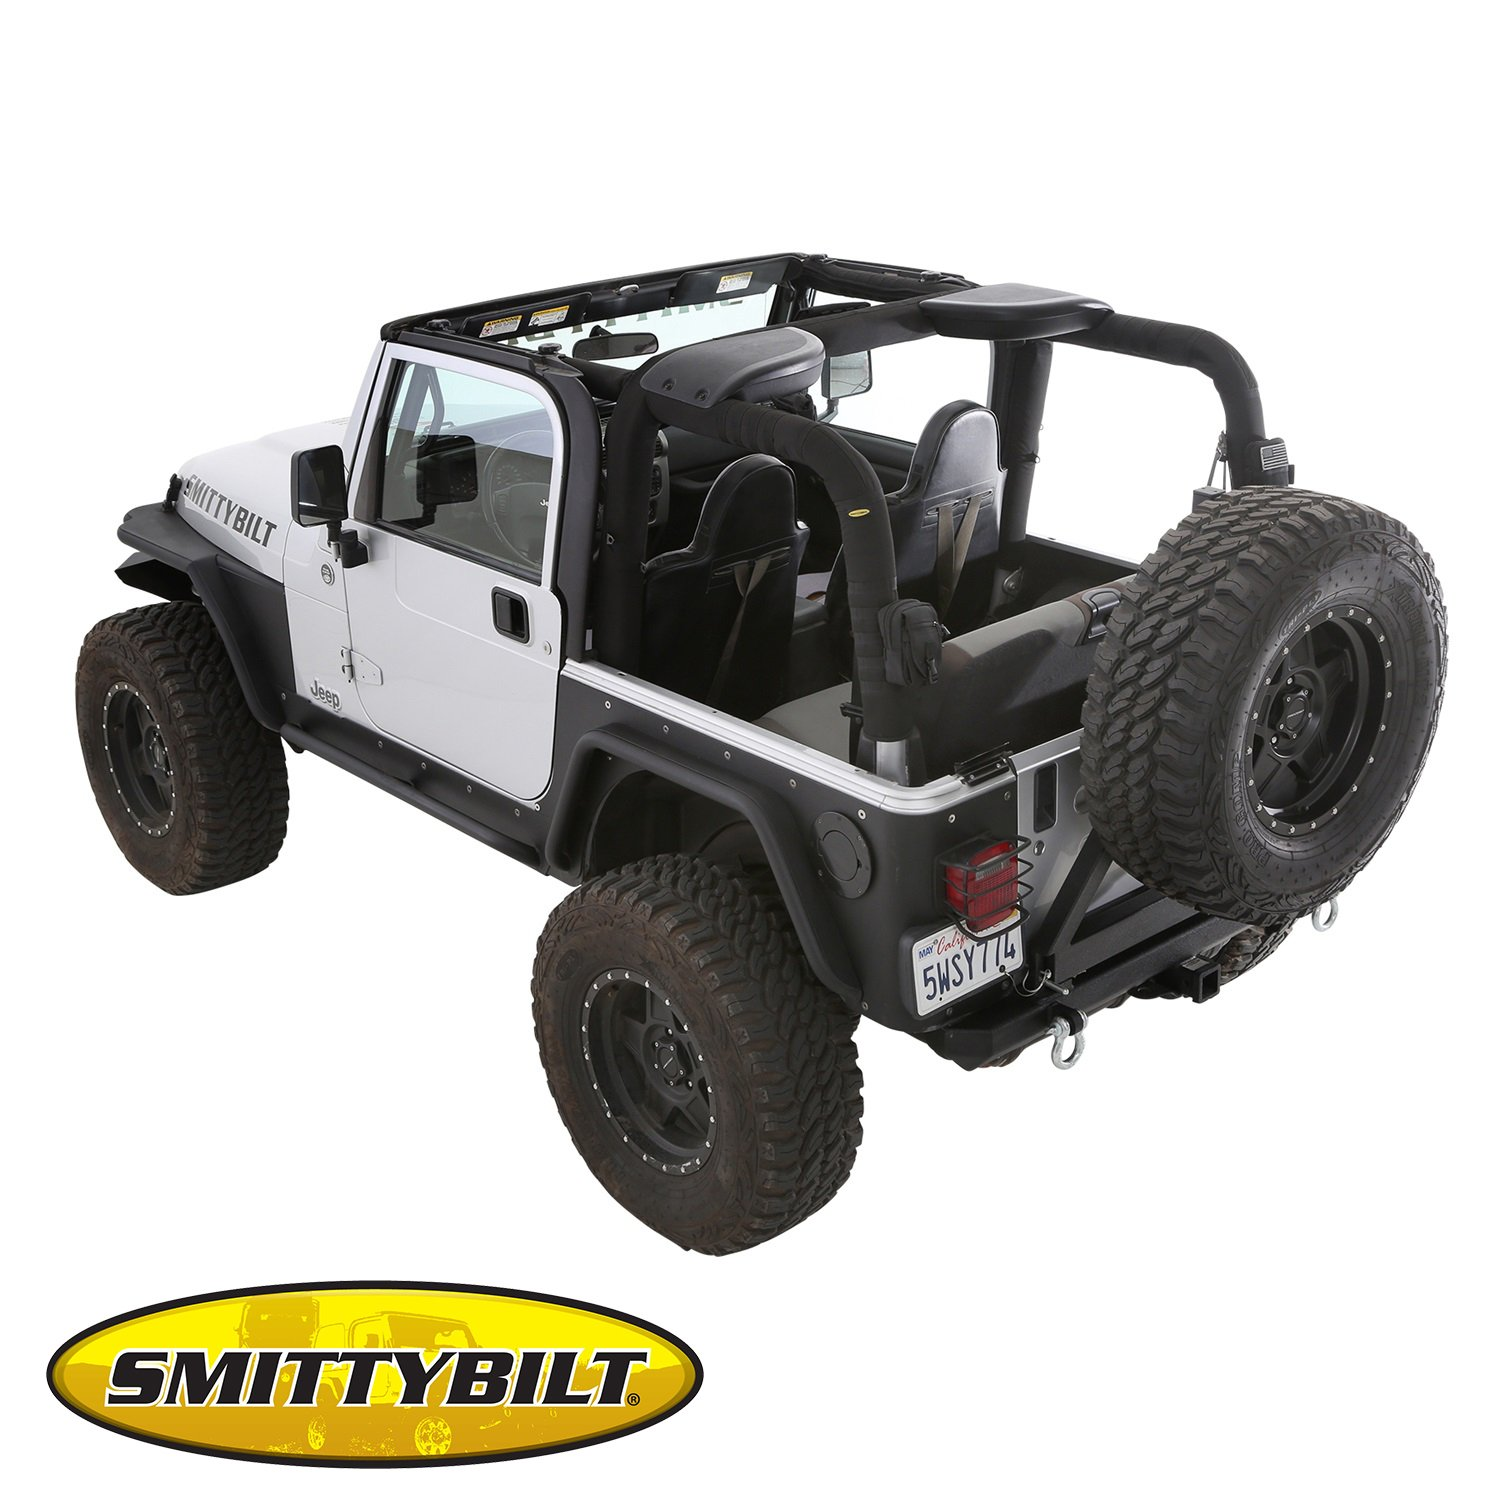 Brightt (S/B-VXR-508) Replacement MOLLE Roll Bar Padding fits Jeep, TJ, Wrangler 1997-2002 by Brightt (Image #4)